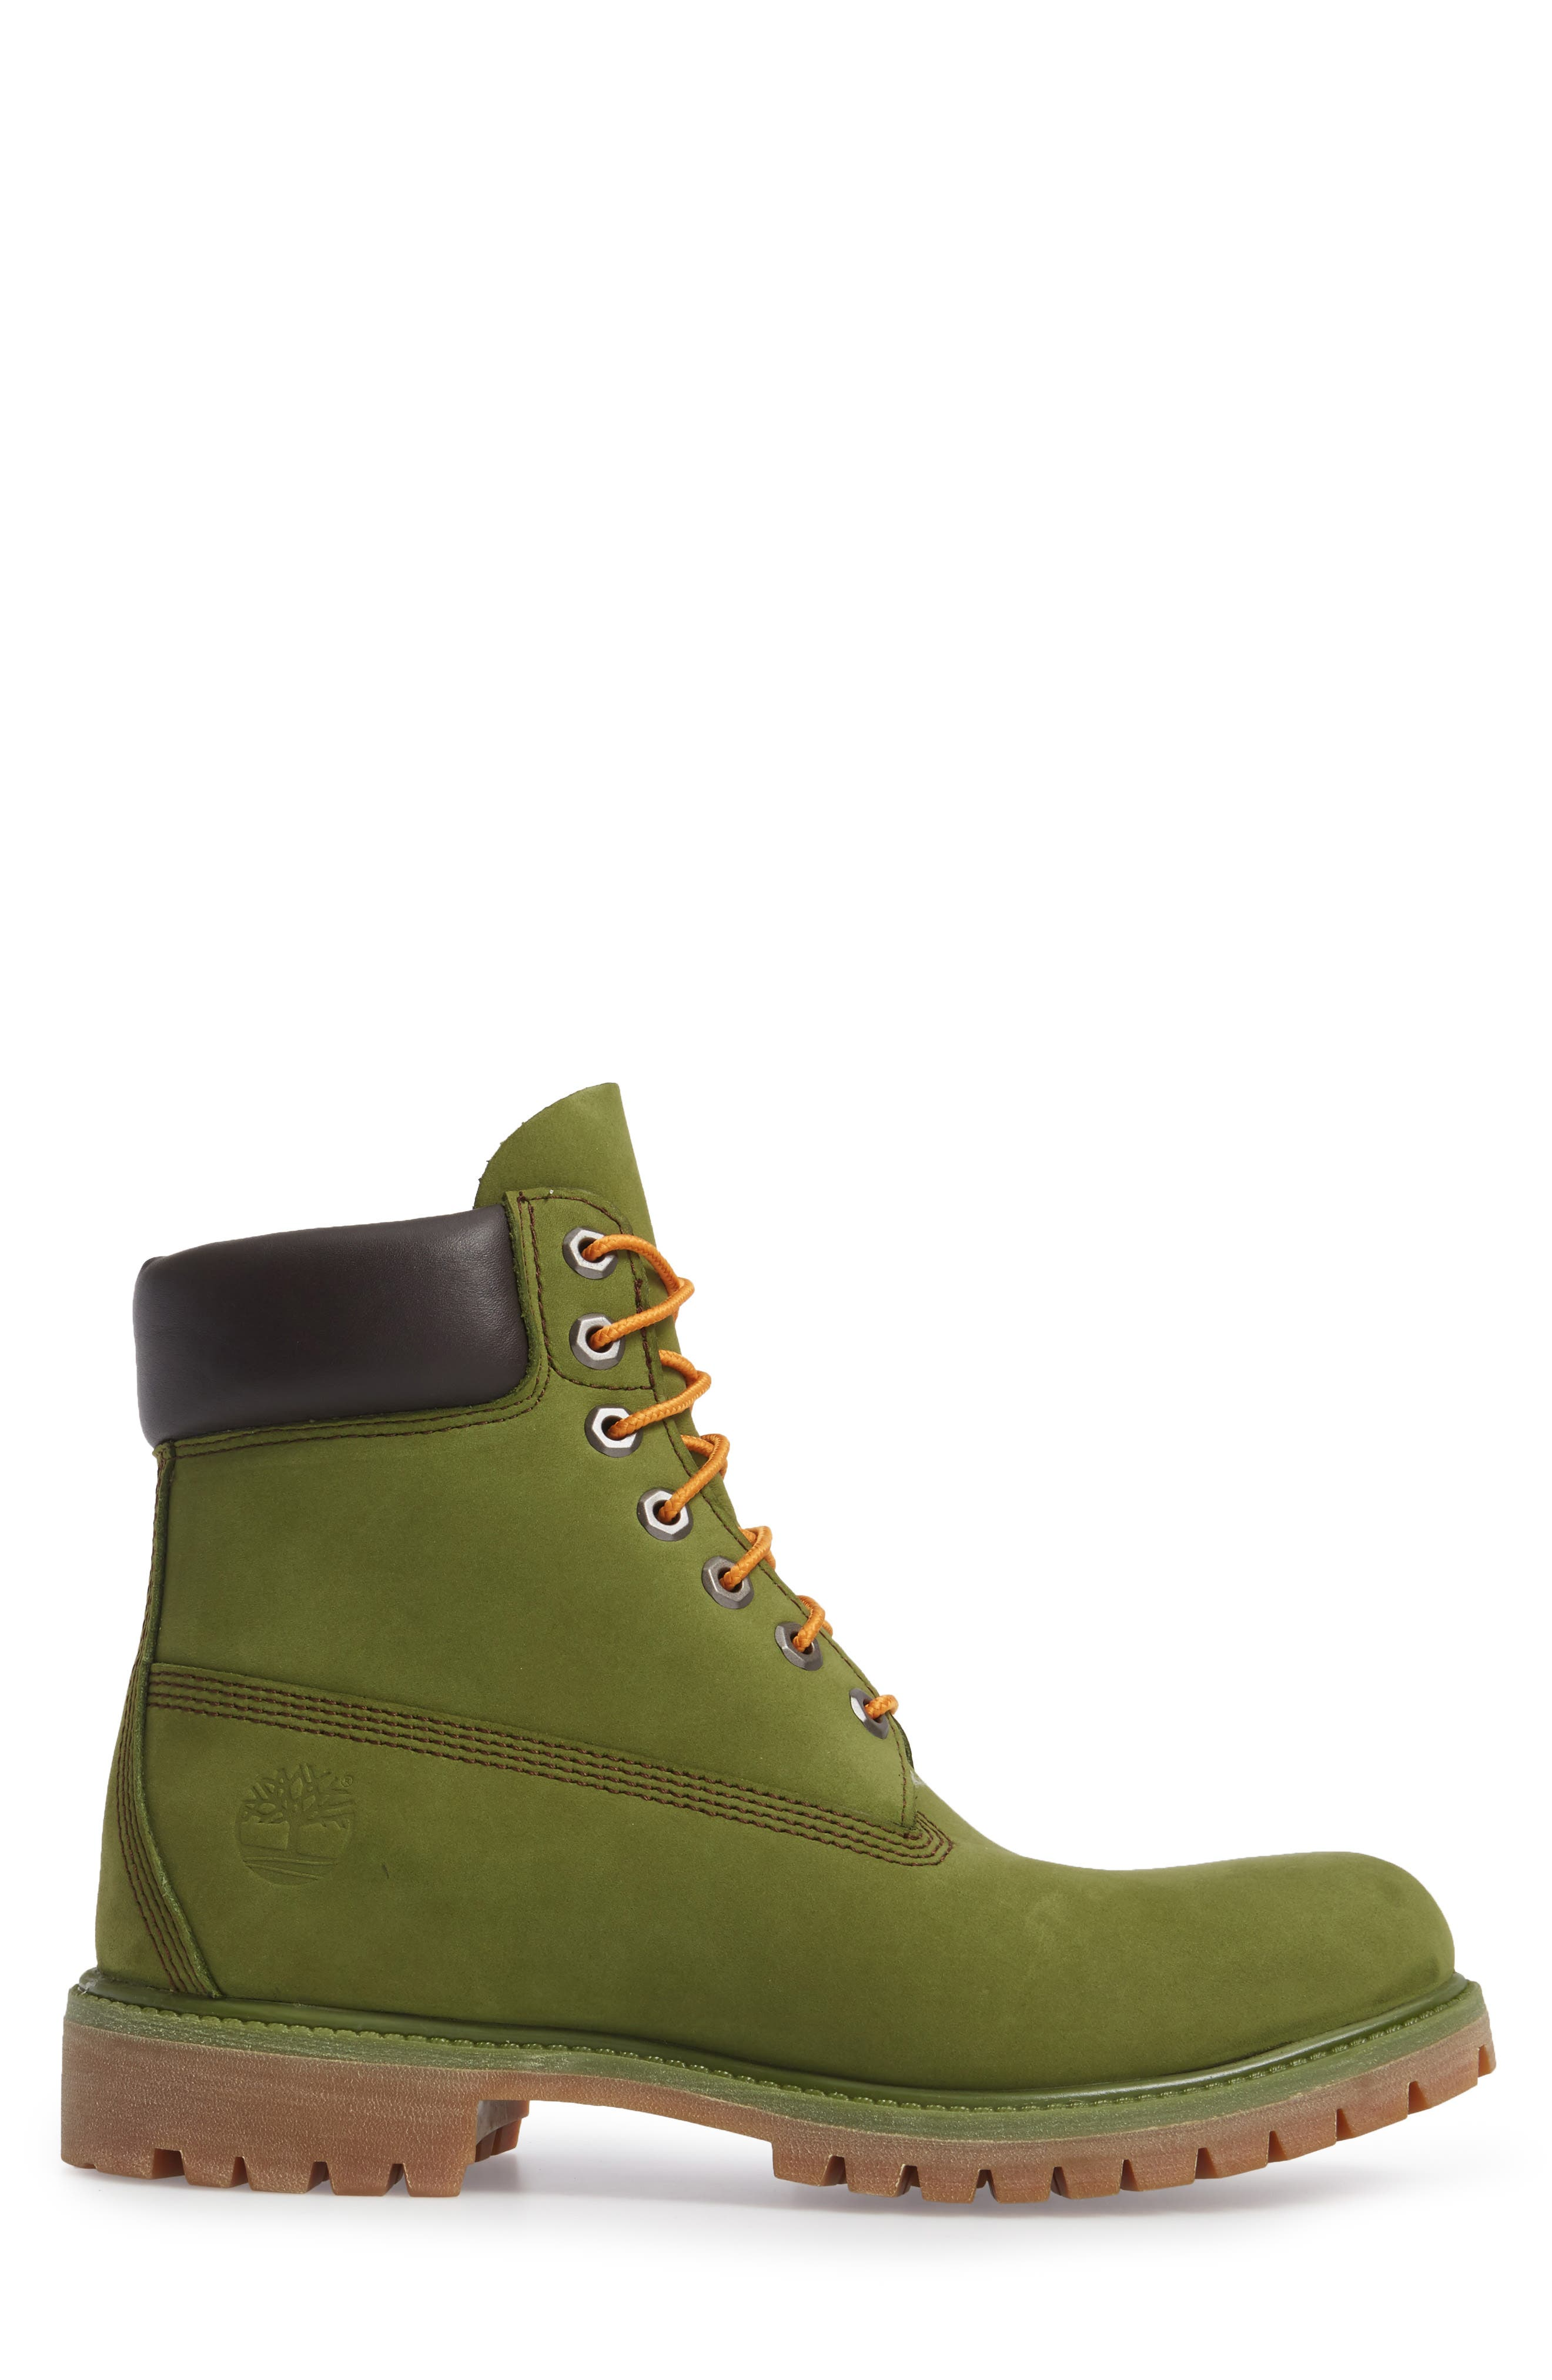 'Six Inch Classic Boots Series - Premium' Boot,                             Alternate thumbnail 3, color,                             Pesto Waterbuck